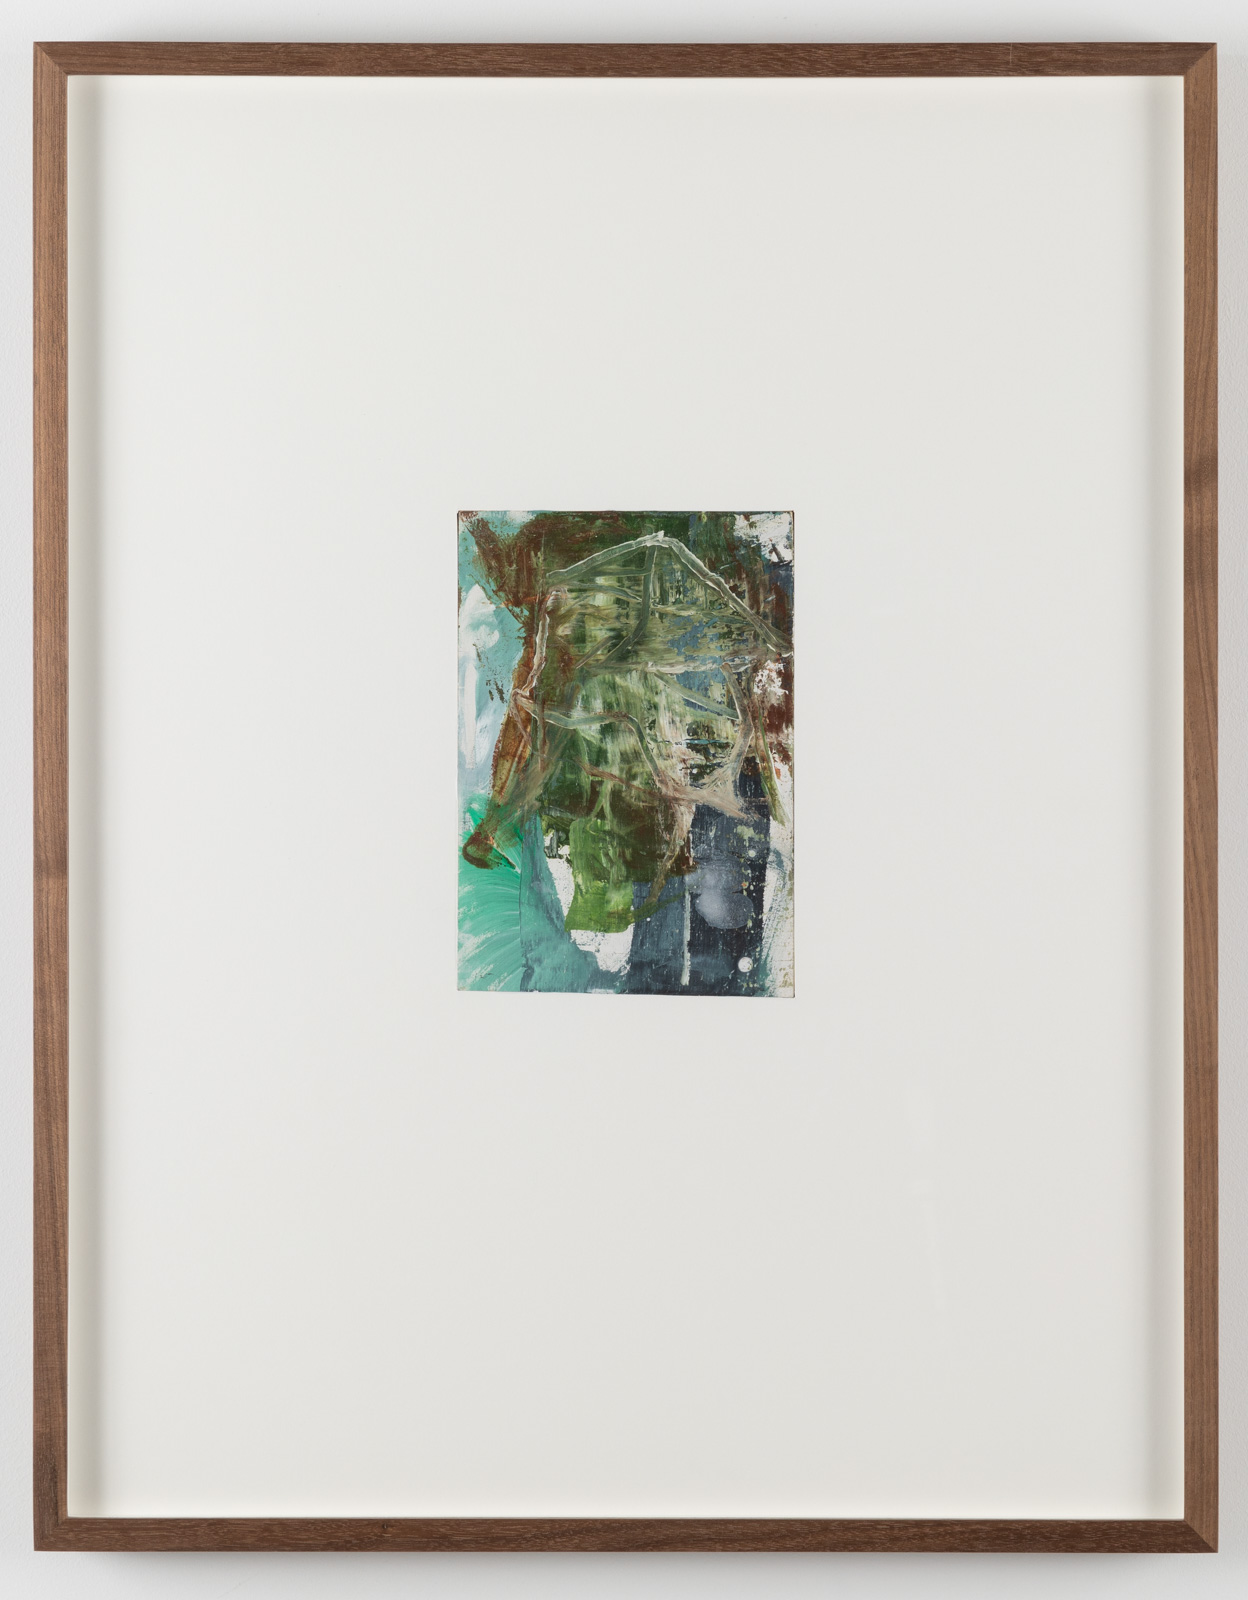 The Very Small Rubicon Paintings No. 06, 2019. Oil on panel in artist's frame, 17,5 x 13,5 cm, overall 65 x 51 x 4 cm